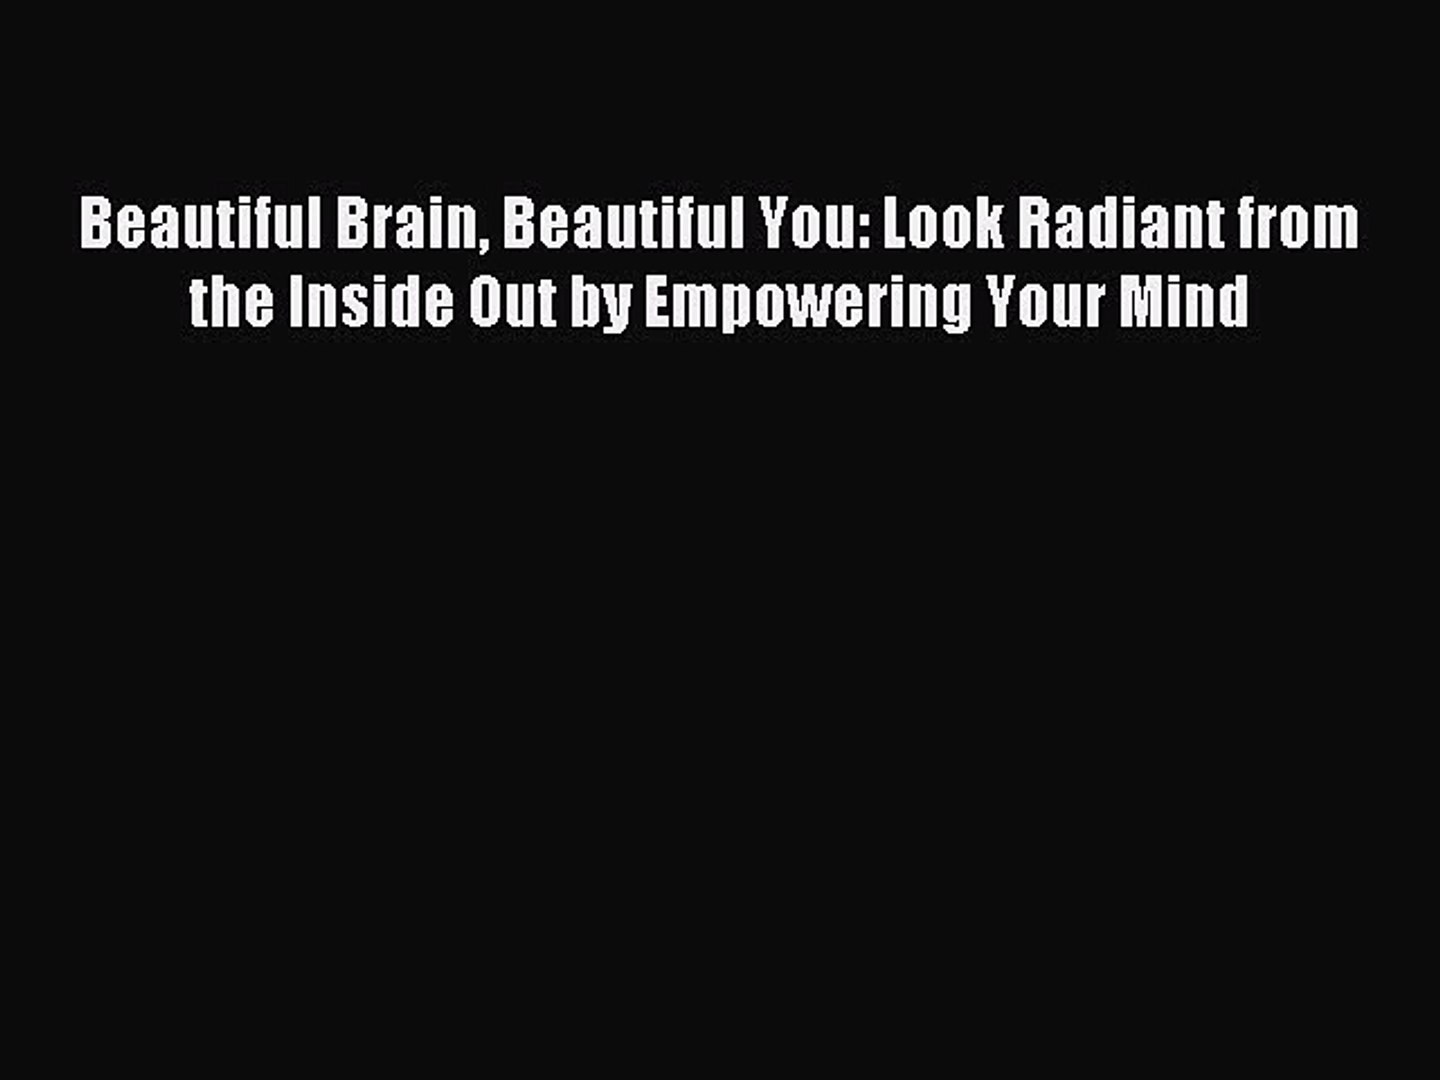 Read Beautiful Brain Beautiful You: Look Radiant from the Inside Out by Empowering Your Mind